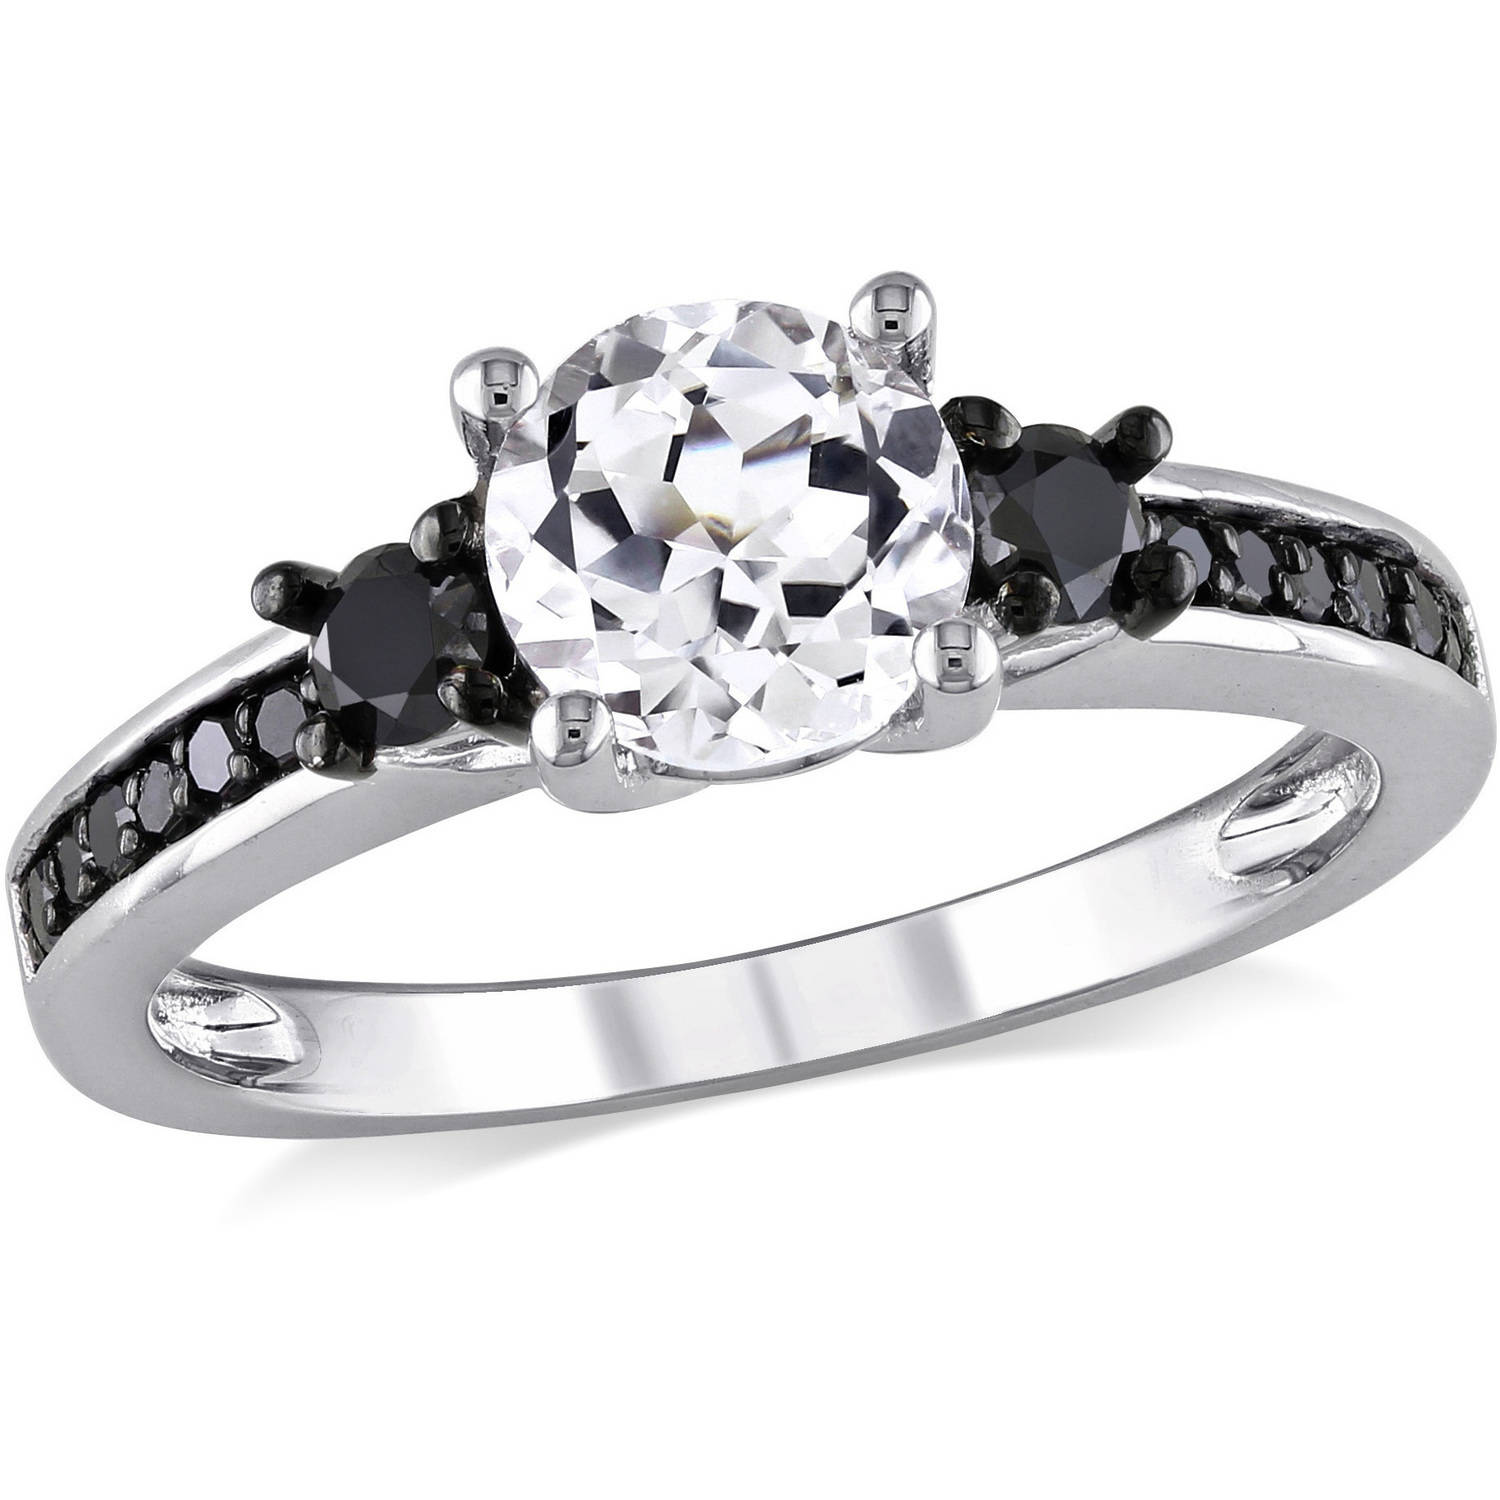 1 3 8 Carat T G W Created White Sapphire and 1 3 Carat T W Black